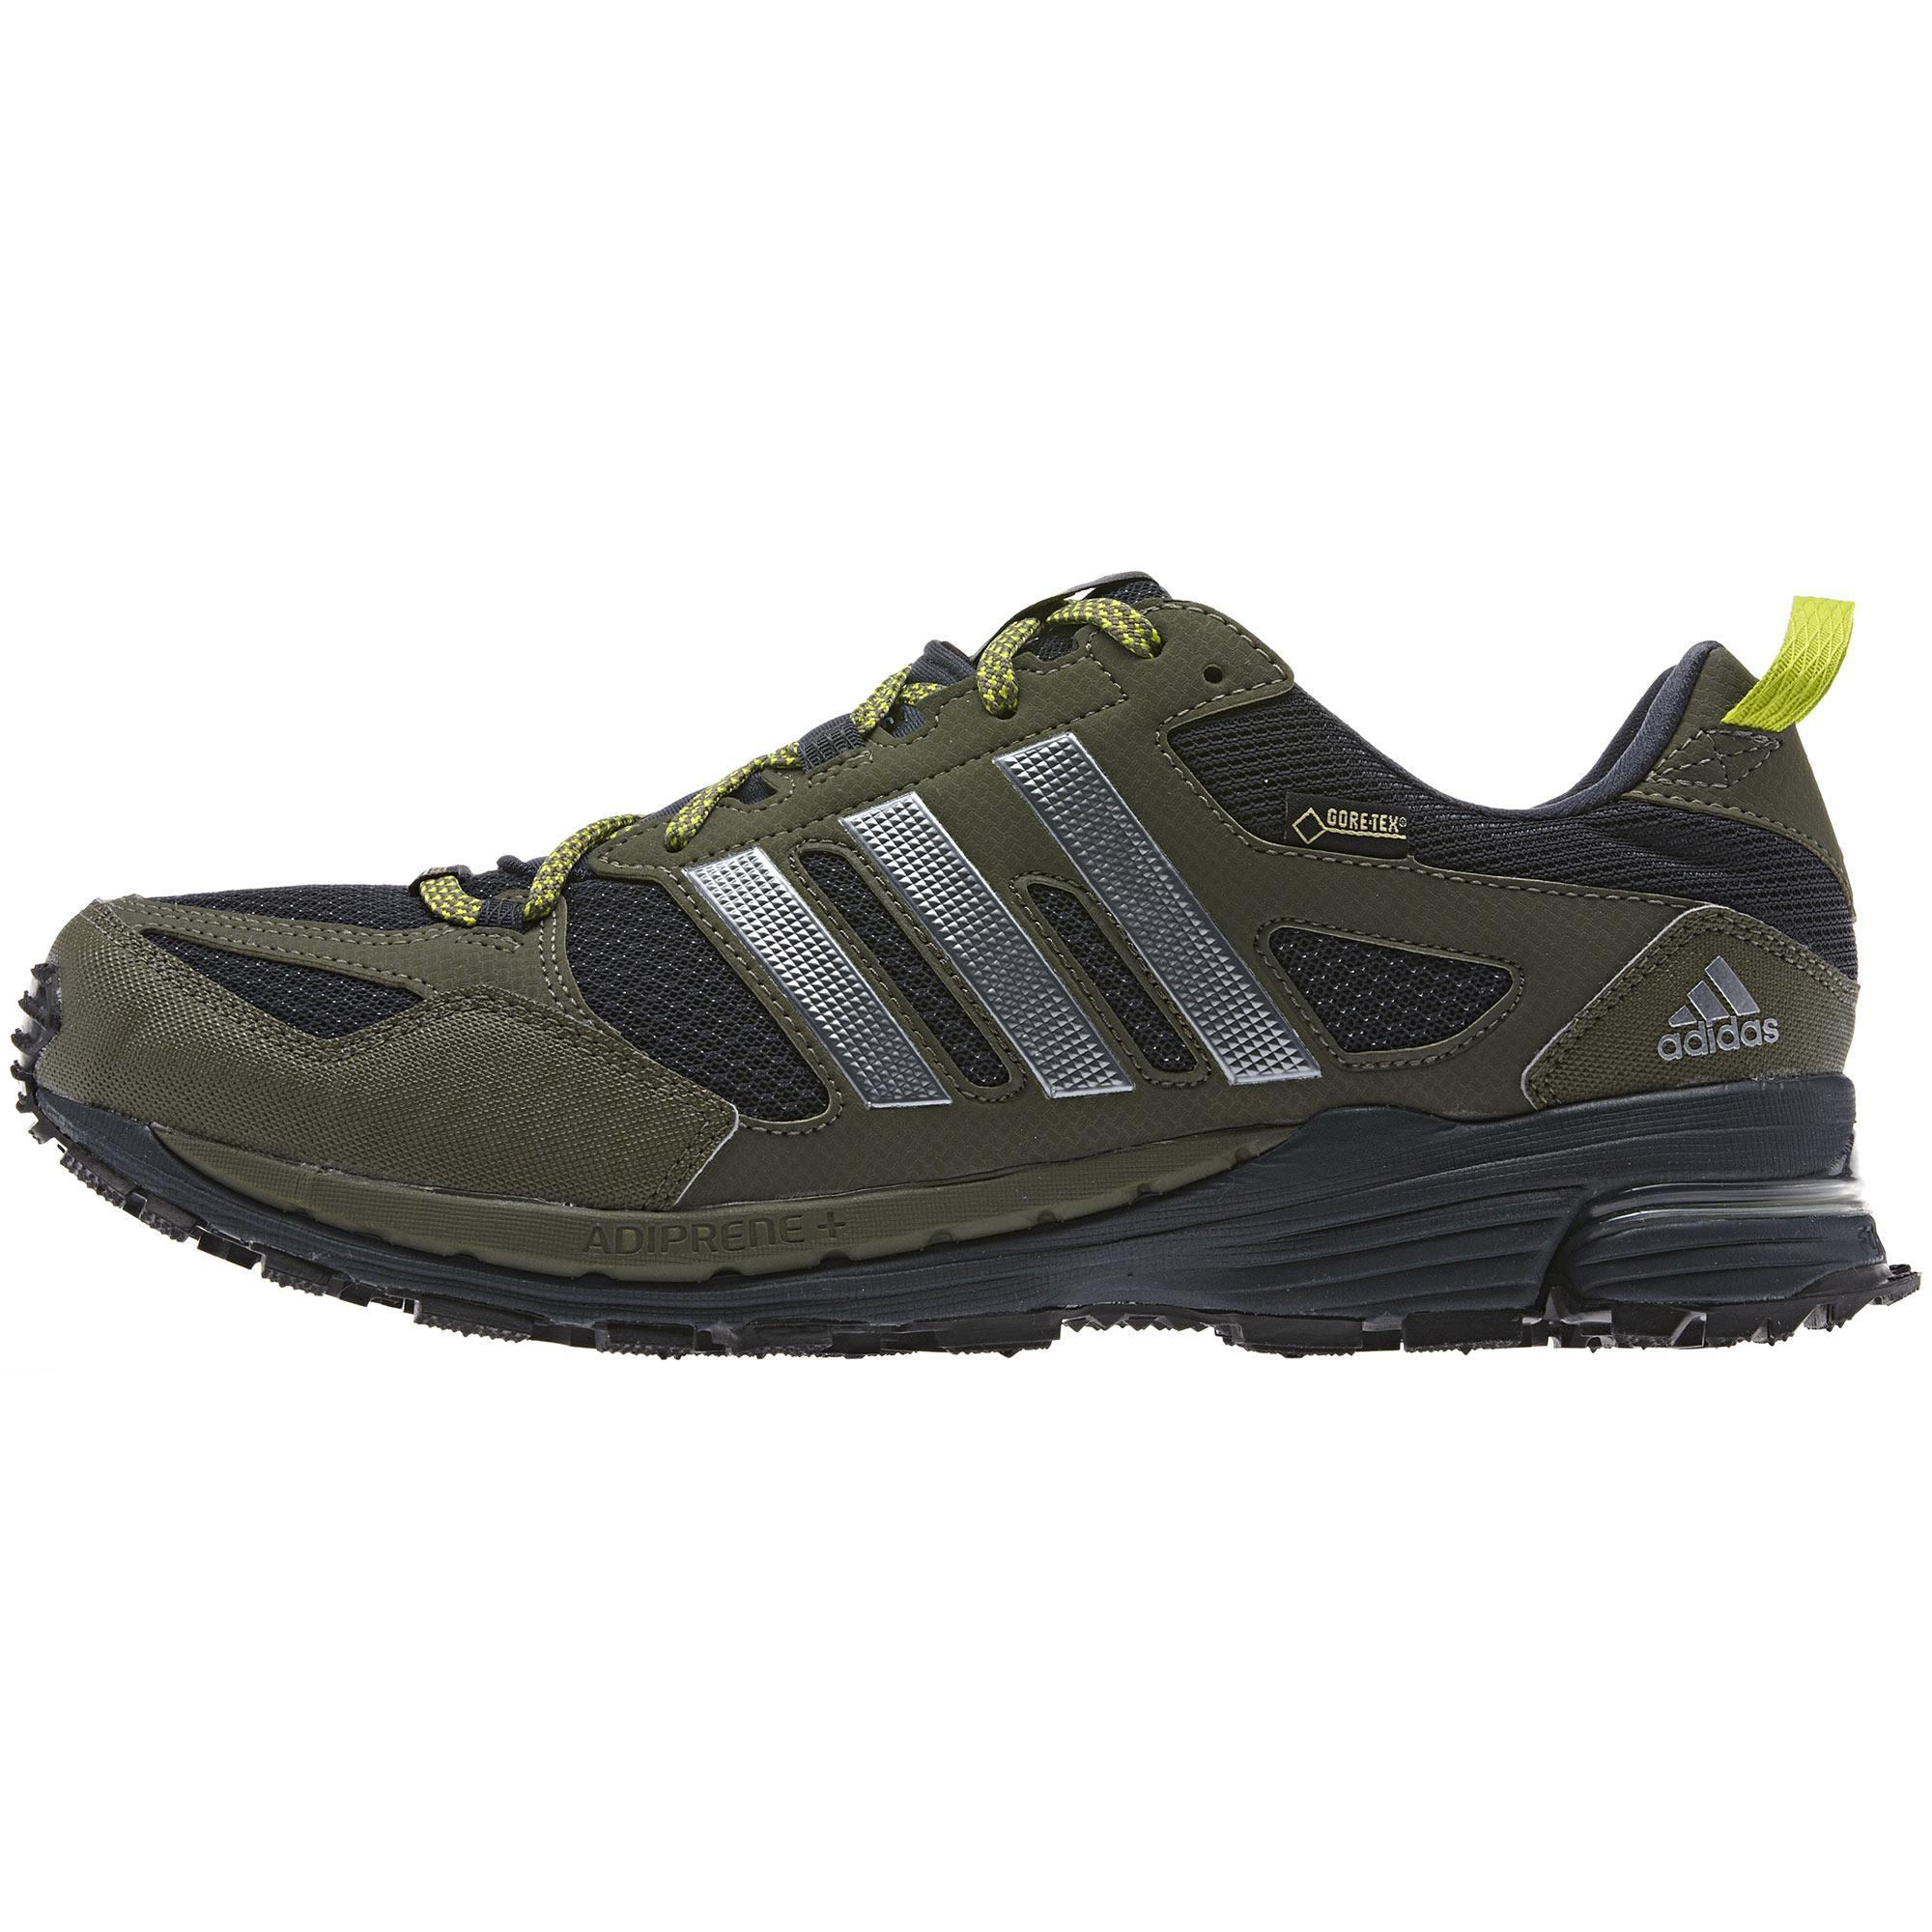 707cd5a7cd01b Adidas Mens Supernova Riot 5 GTX Running Shoes - Green